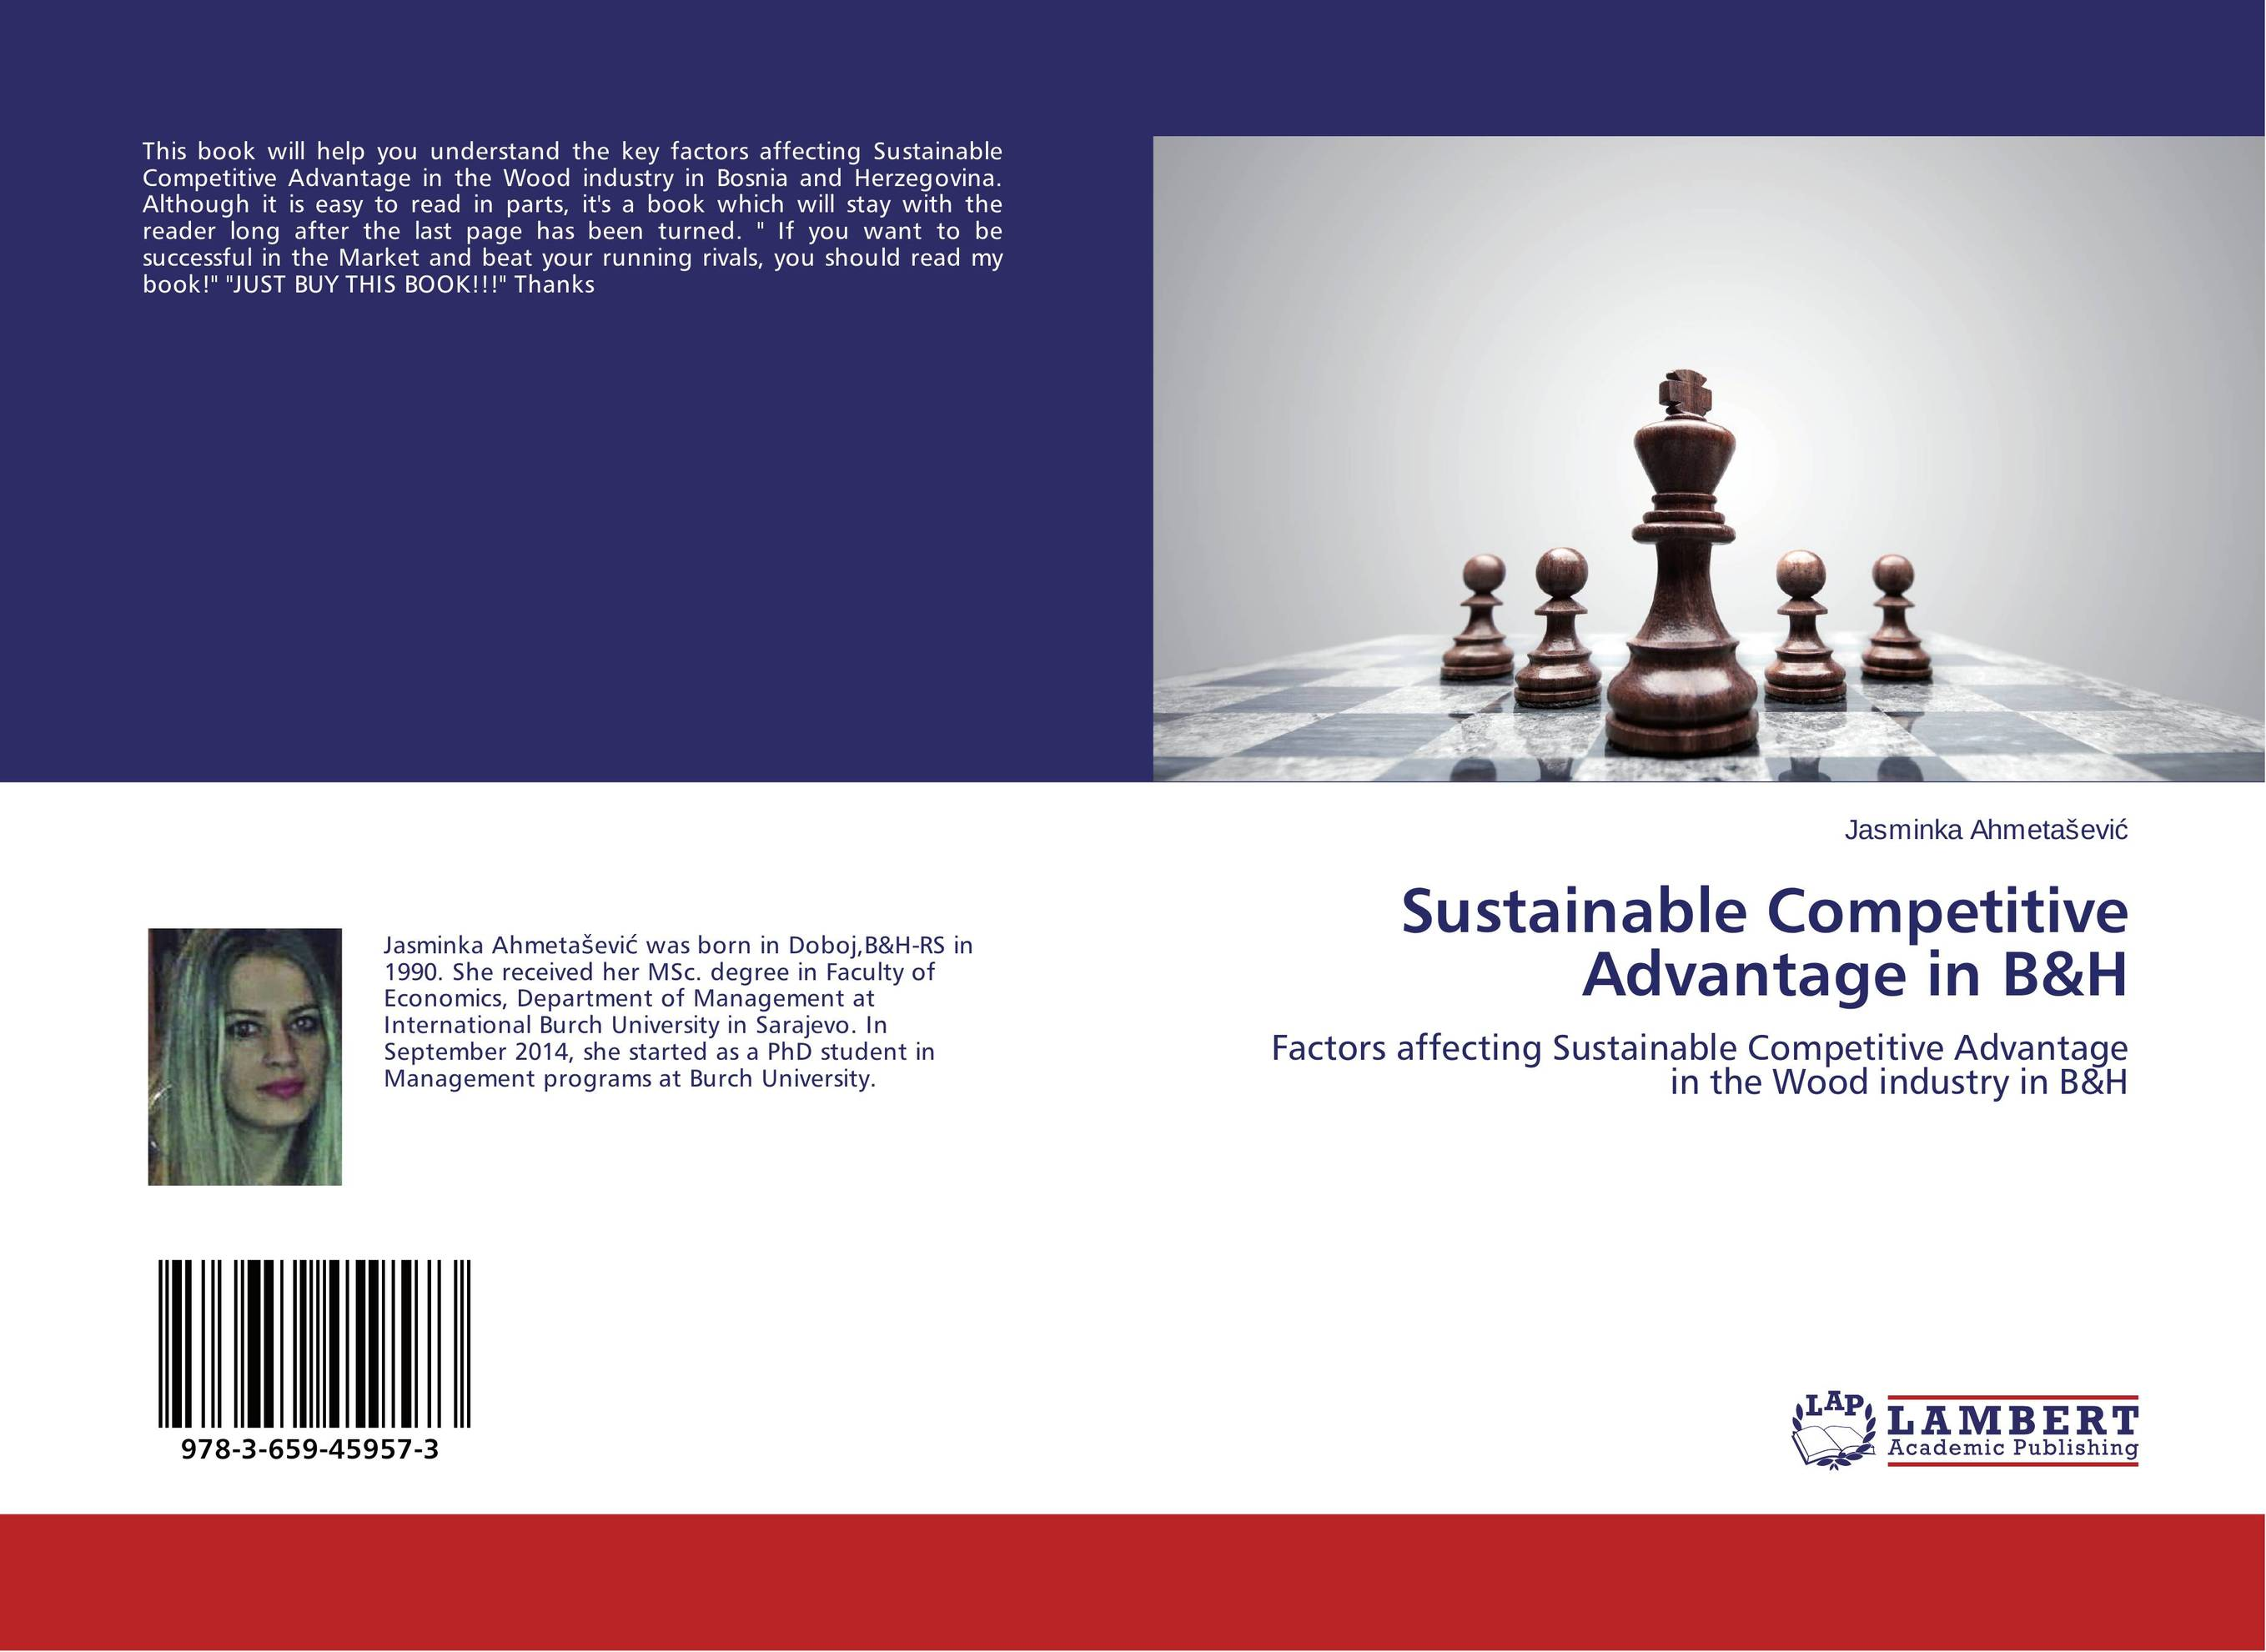 Sustainable Competitive Advantage in B&H business intelligence for competitive advantage in insurance industry